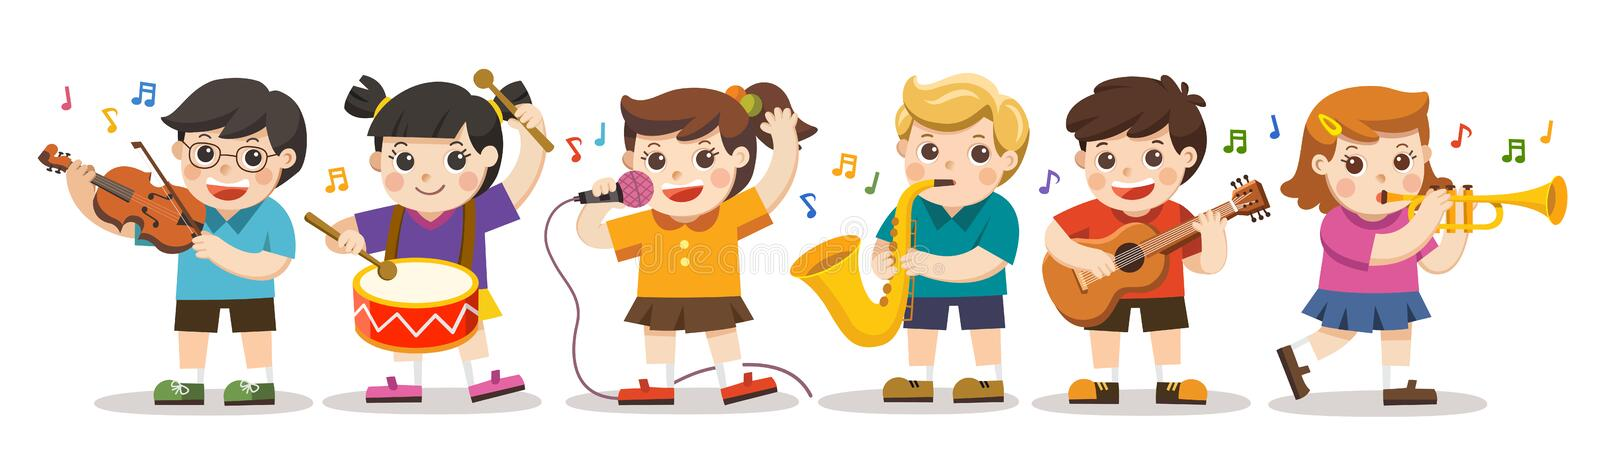 School kids playing musical instruments. Children Performance royalty free illustration